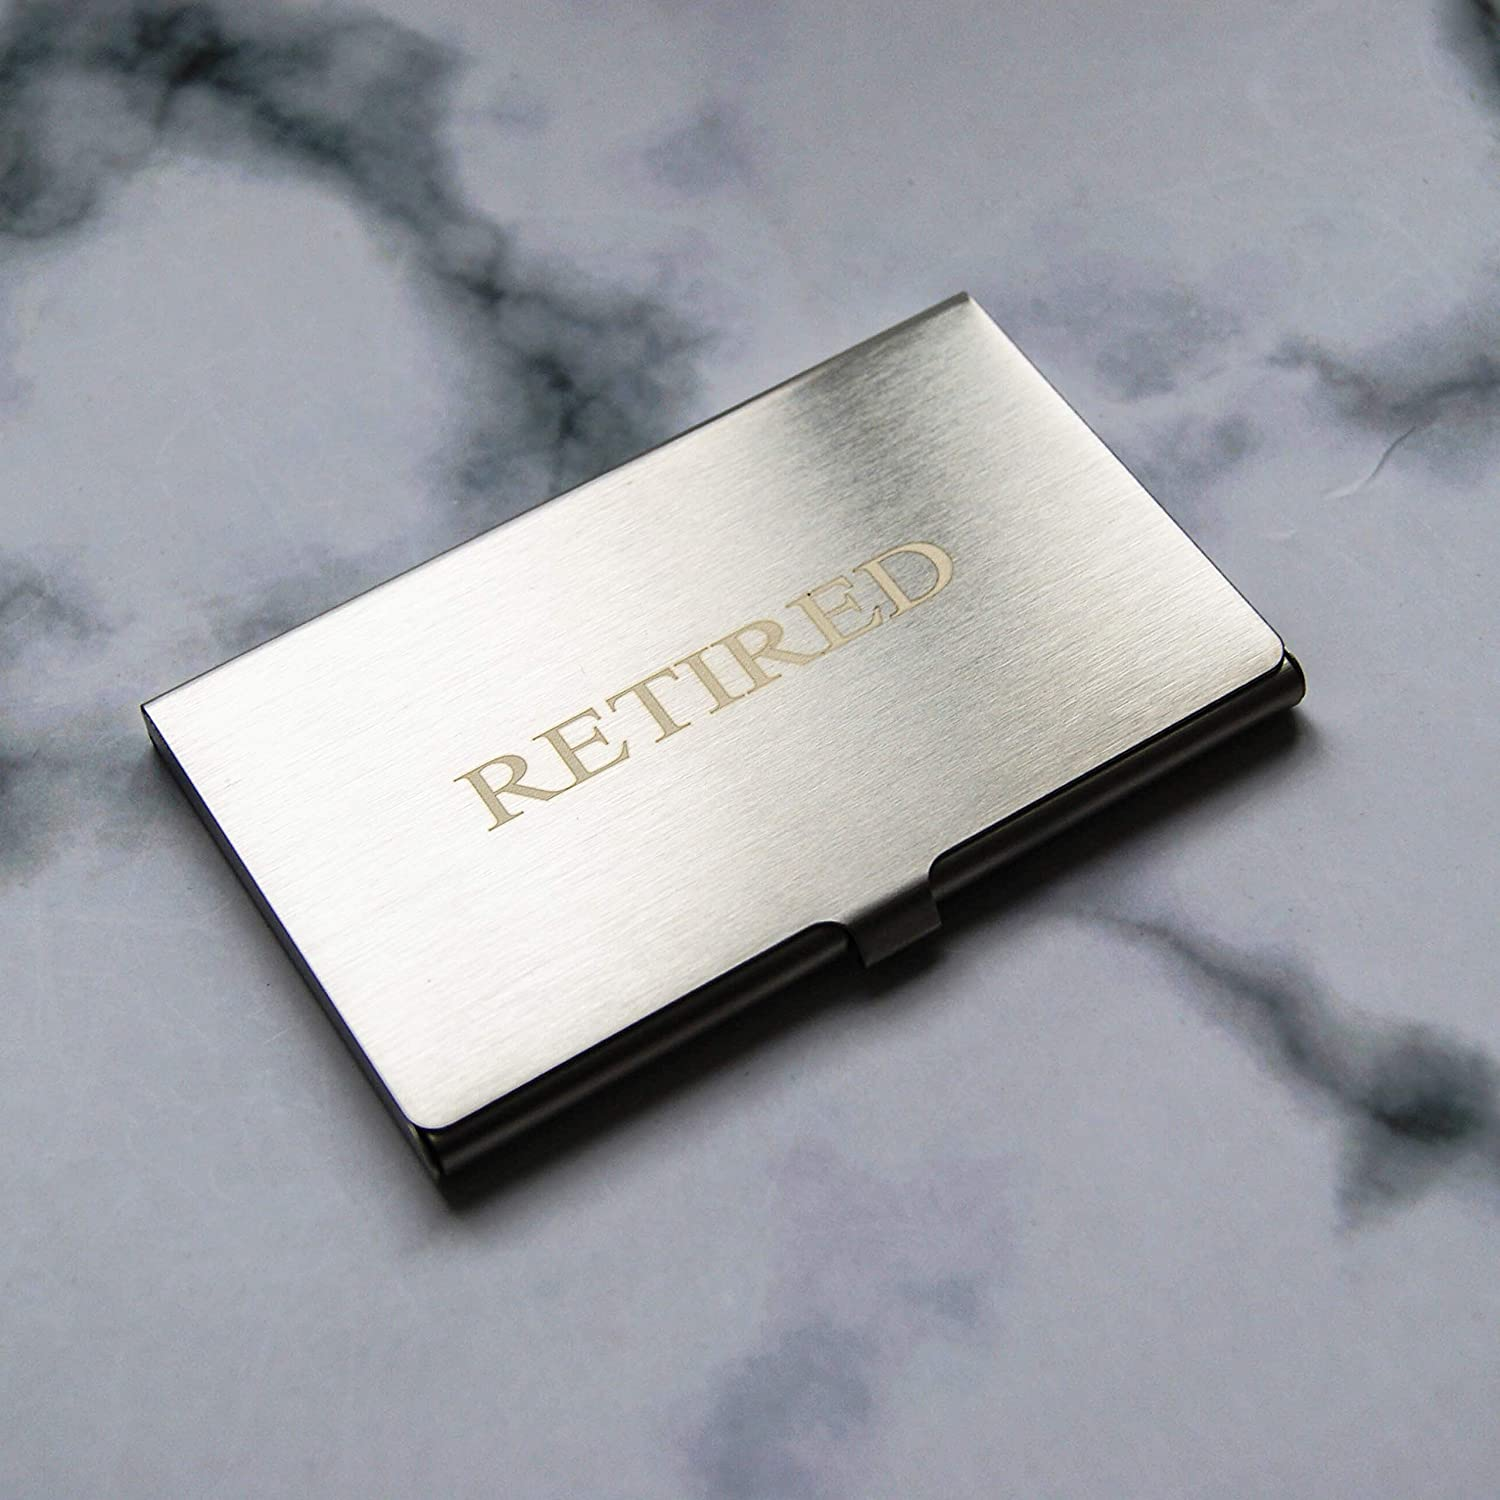 Friend Pack of 50//With Silver Stainless Steel Case Coworkers Colleague Employees Women Boss RXBC2011 Retired Business Cards Funny Retirement Gift For Retired Men